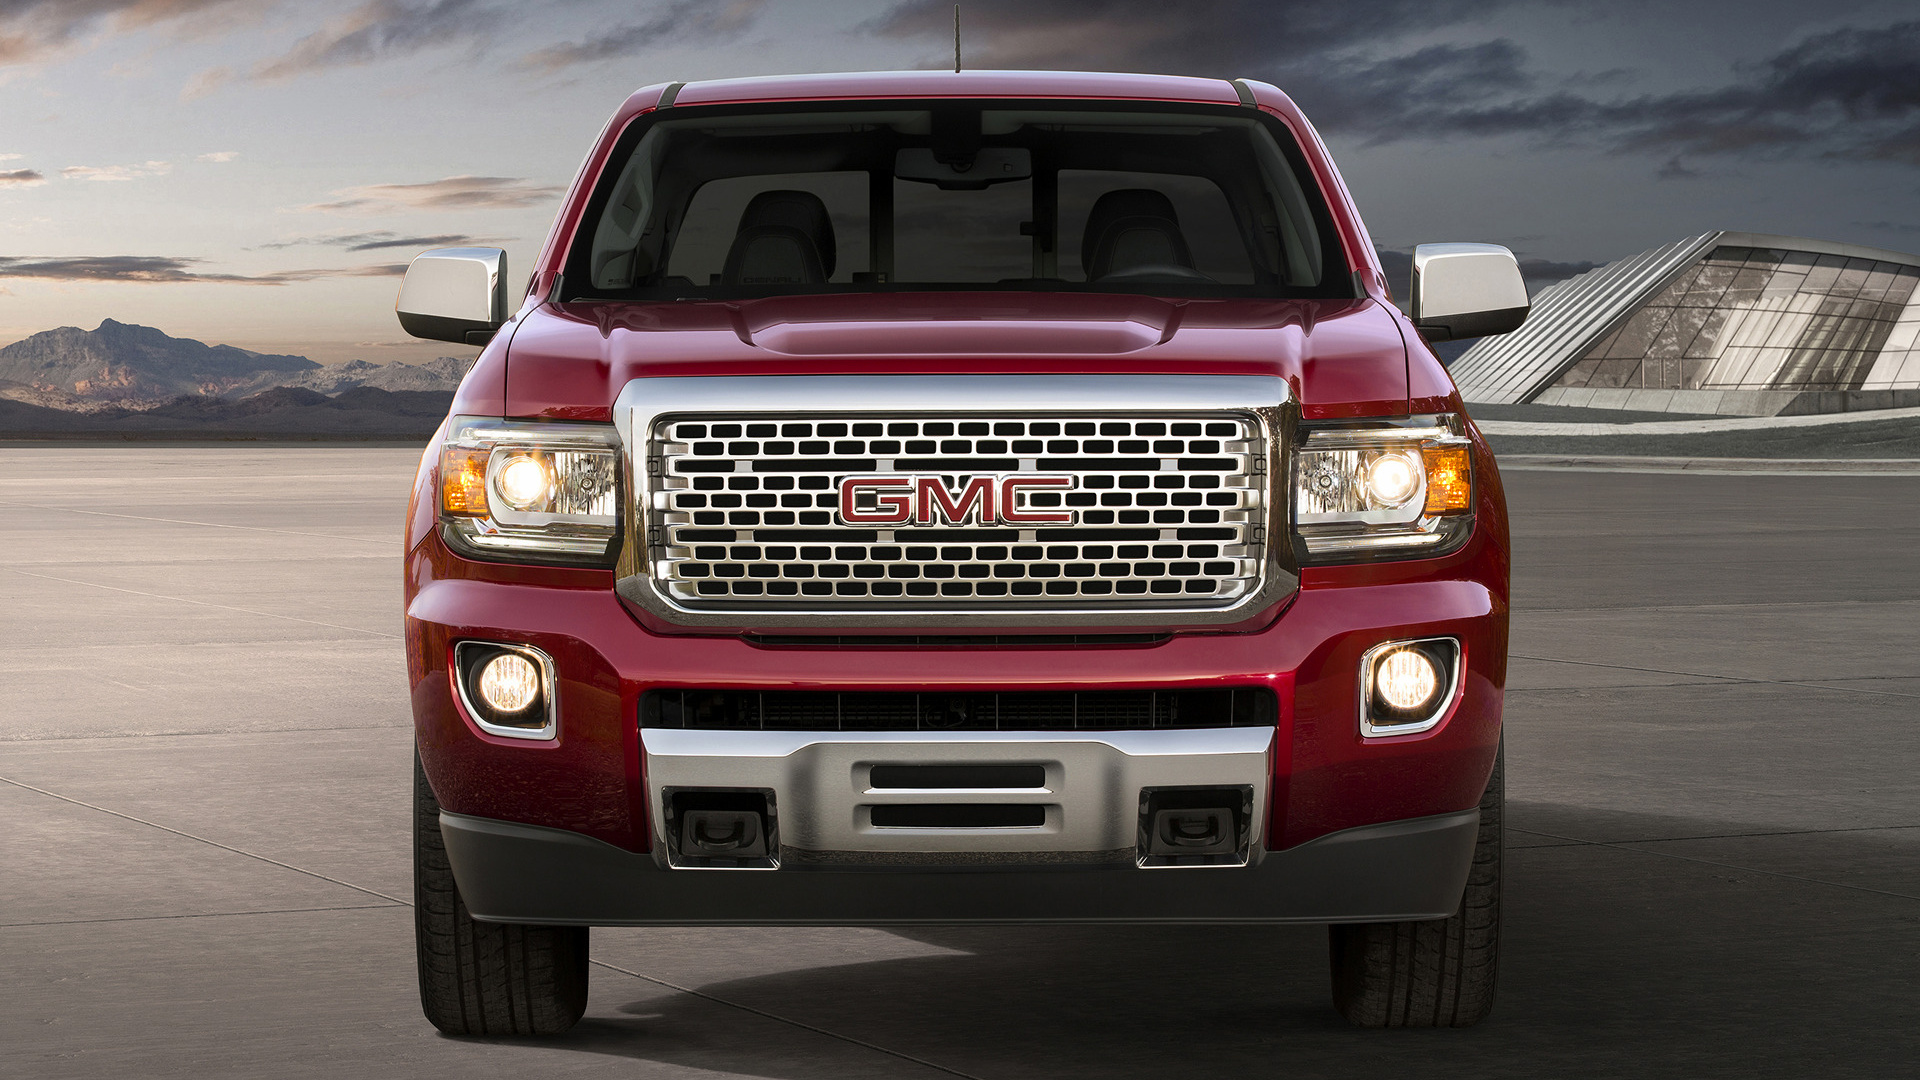 GMC Canyon Denali Crew Cab 2017 Wallpapers And HD Images